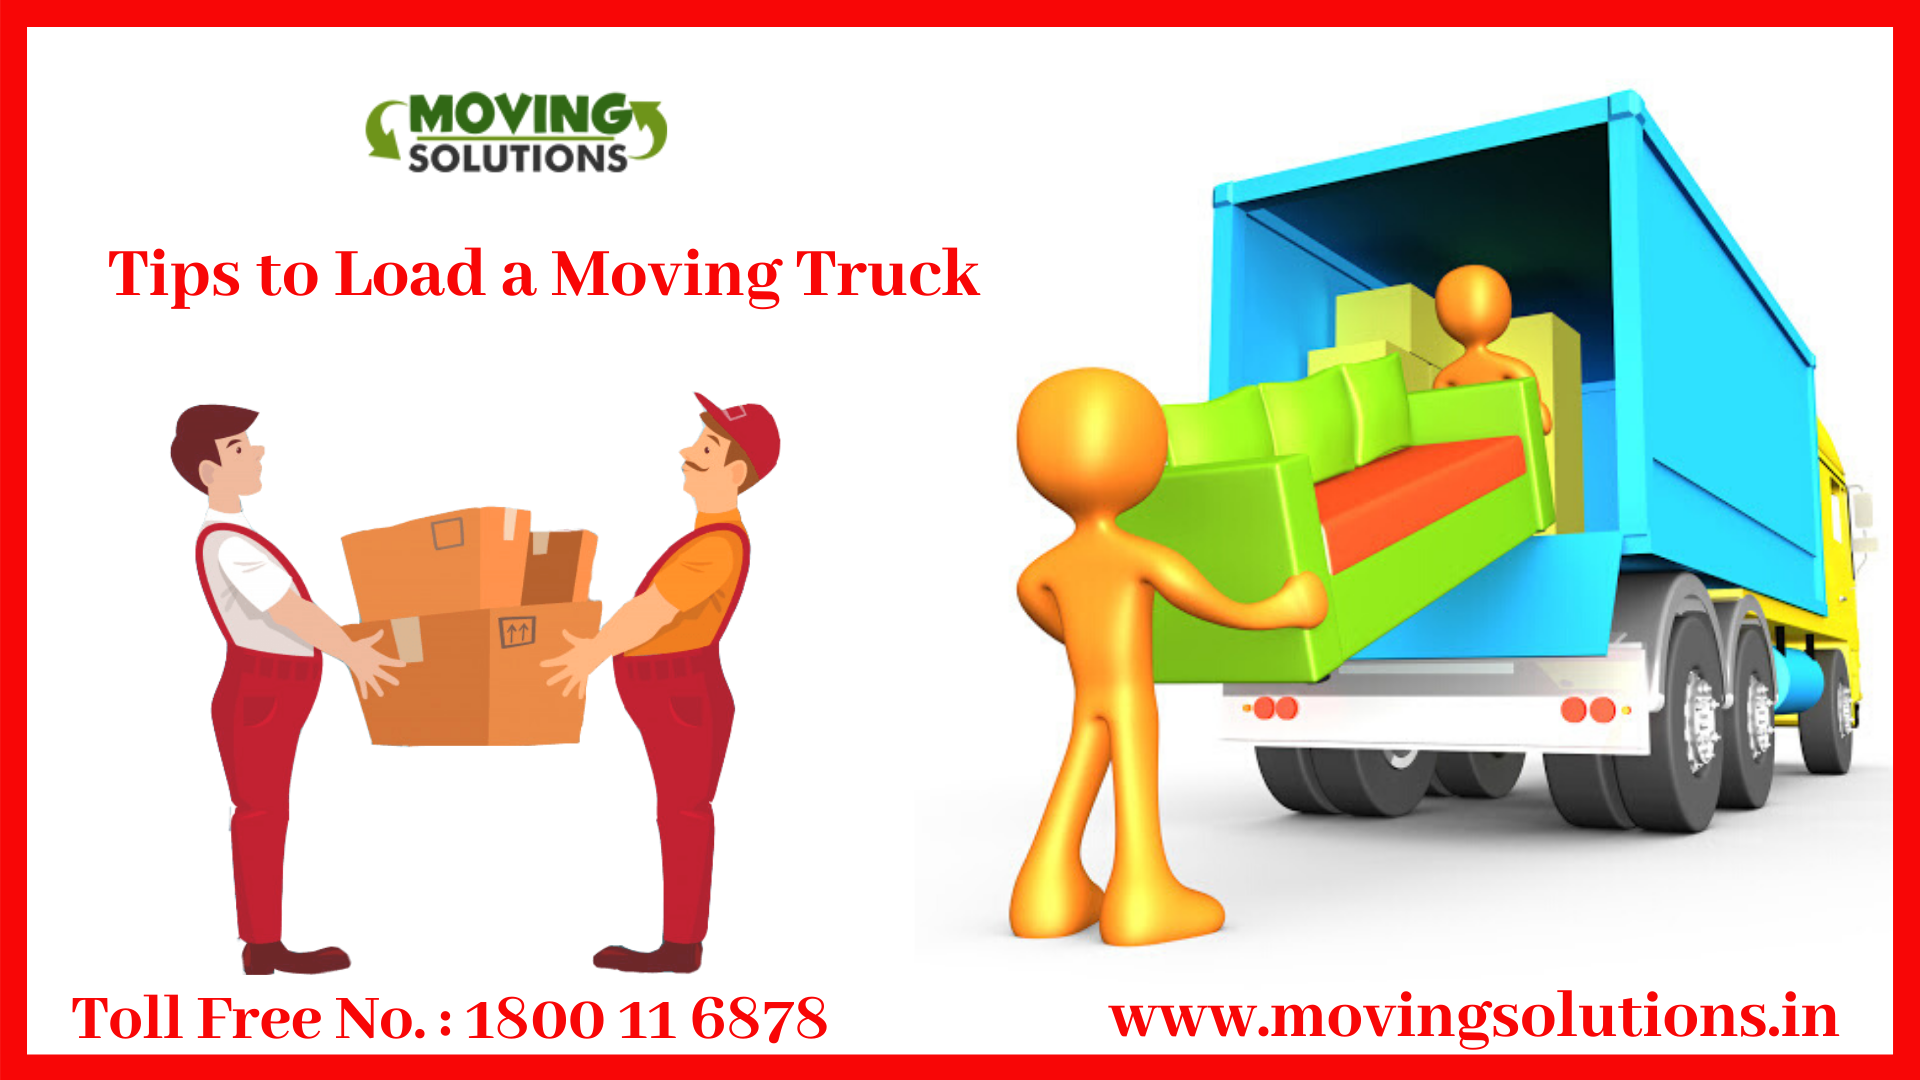 Movers to help load a truck